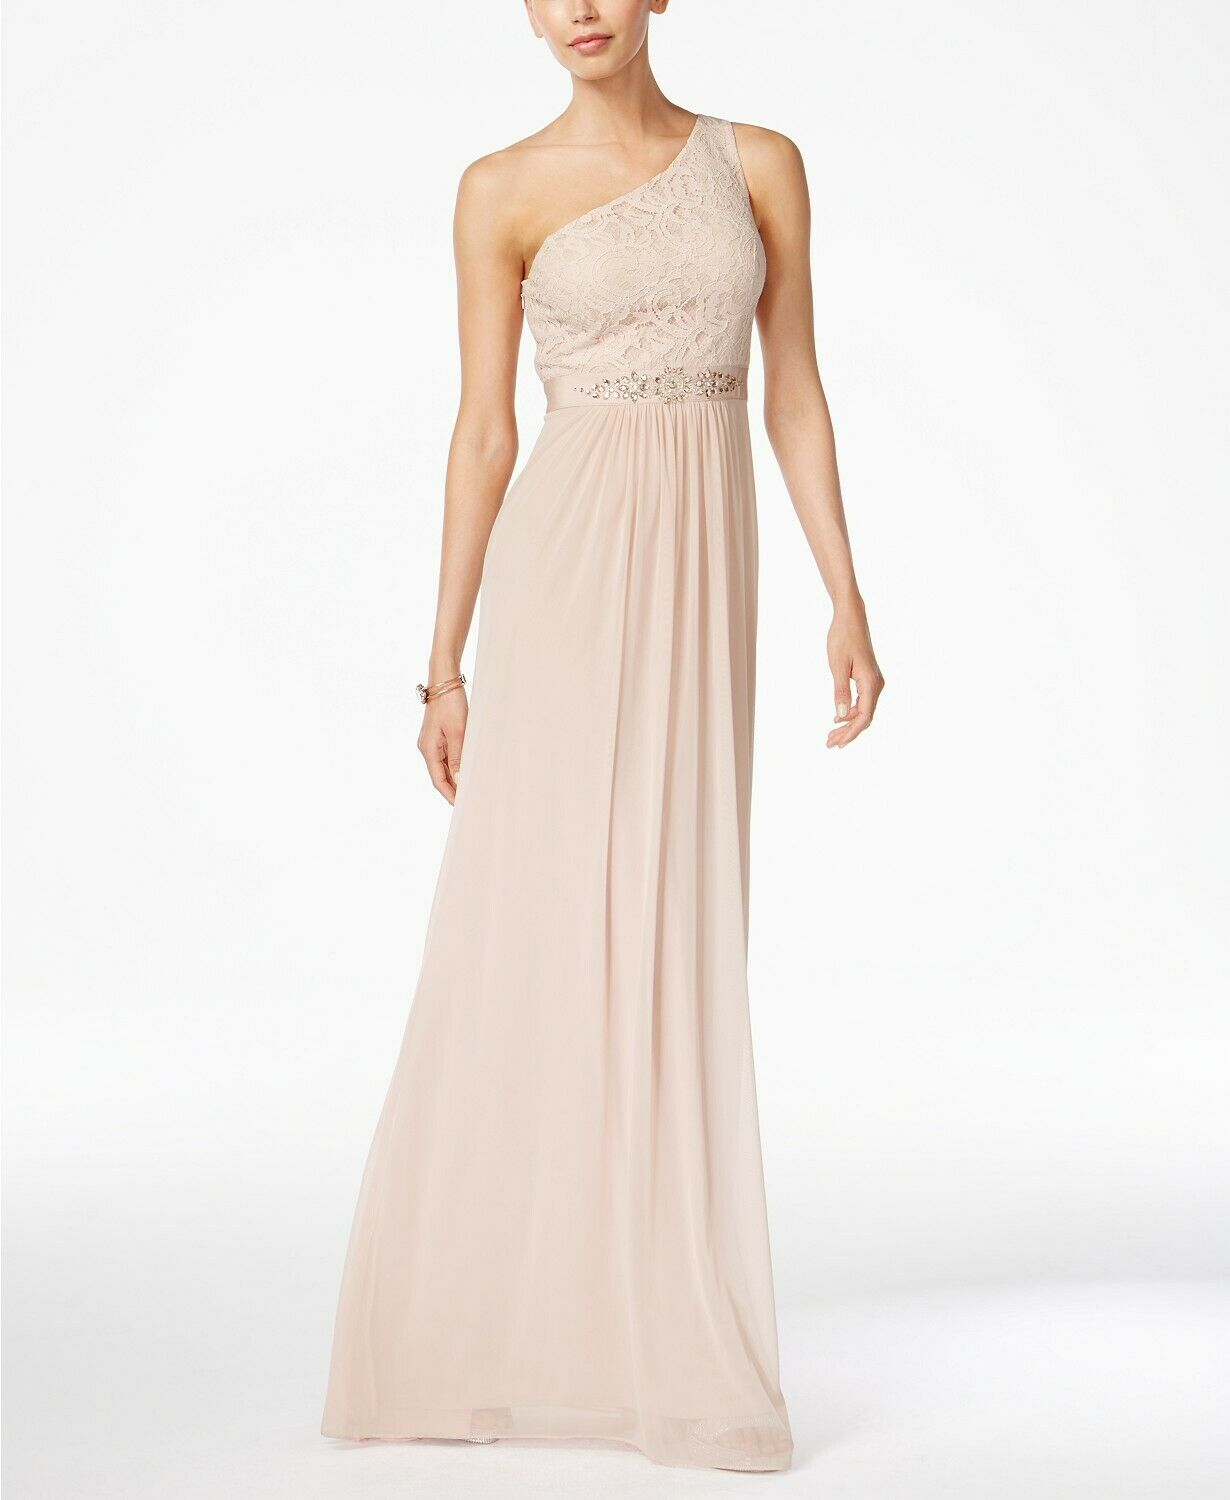 515 ADRIANNA PAPELL WOMEN'S PINK BEADED LACE ONE-SHOULDER FORMAL DRESS SIZE 12